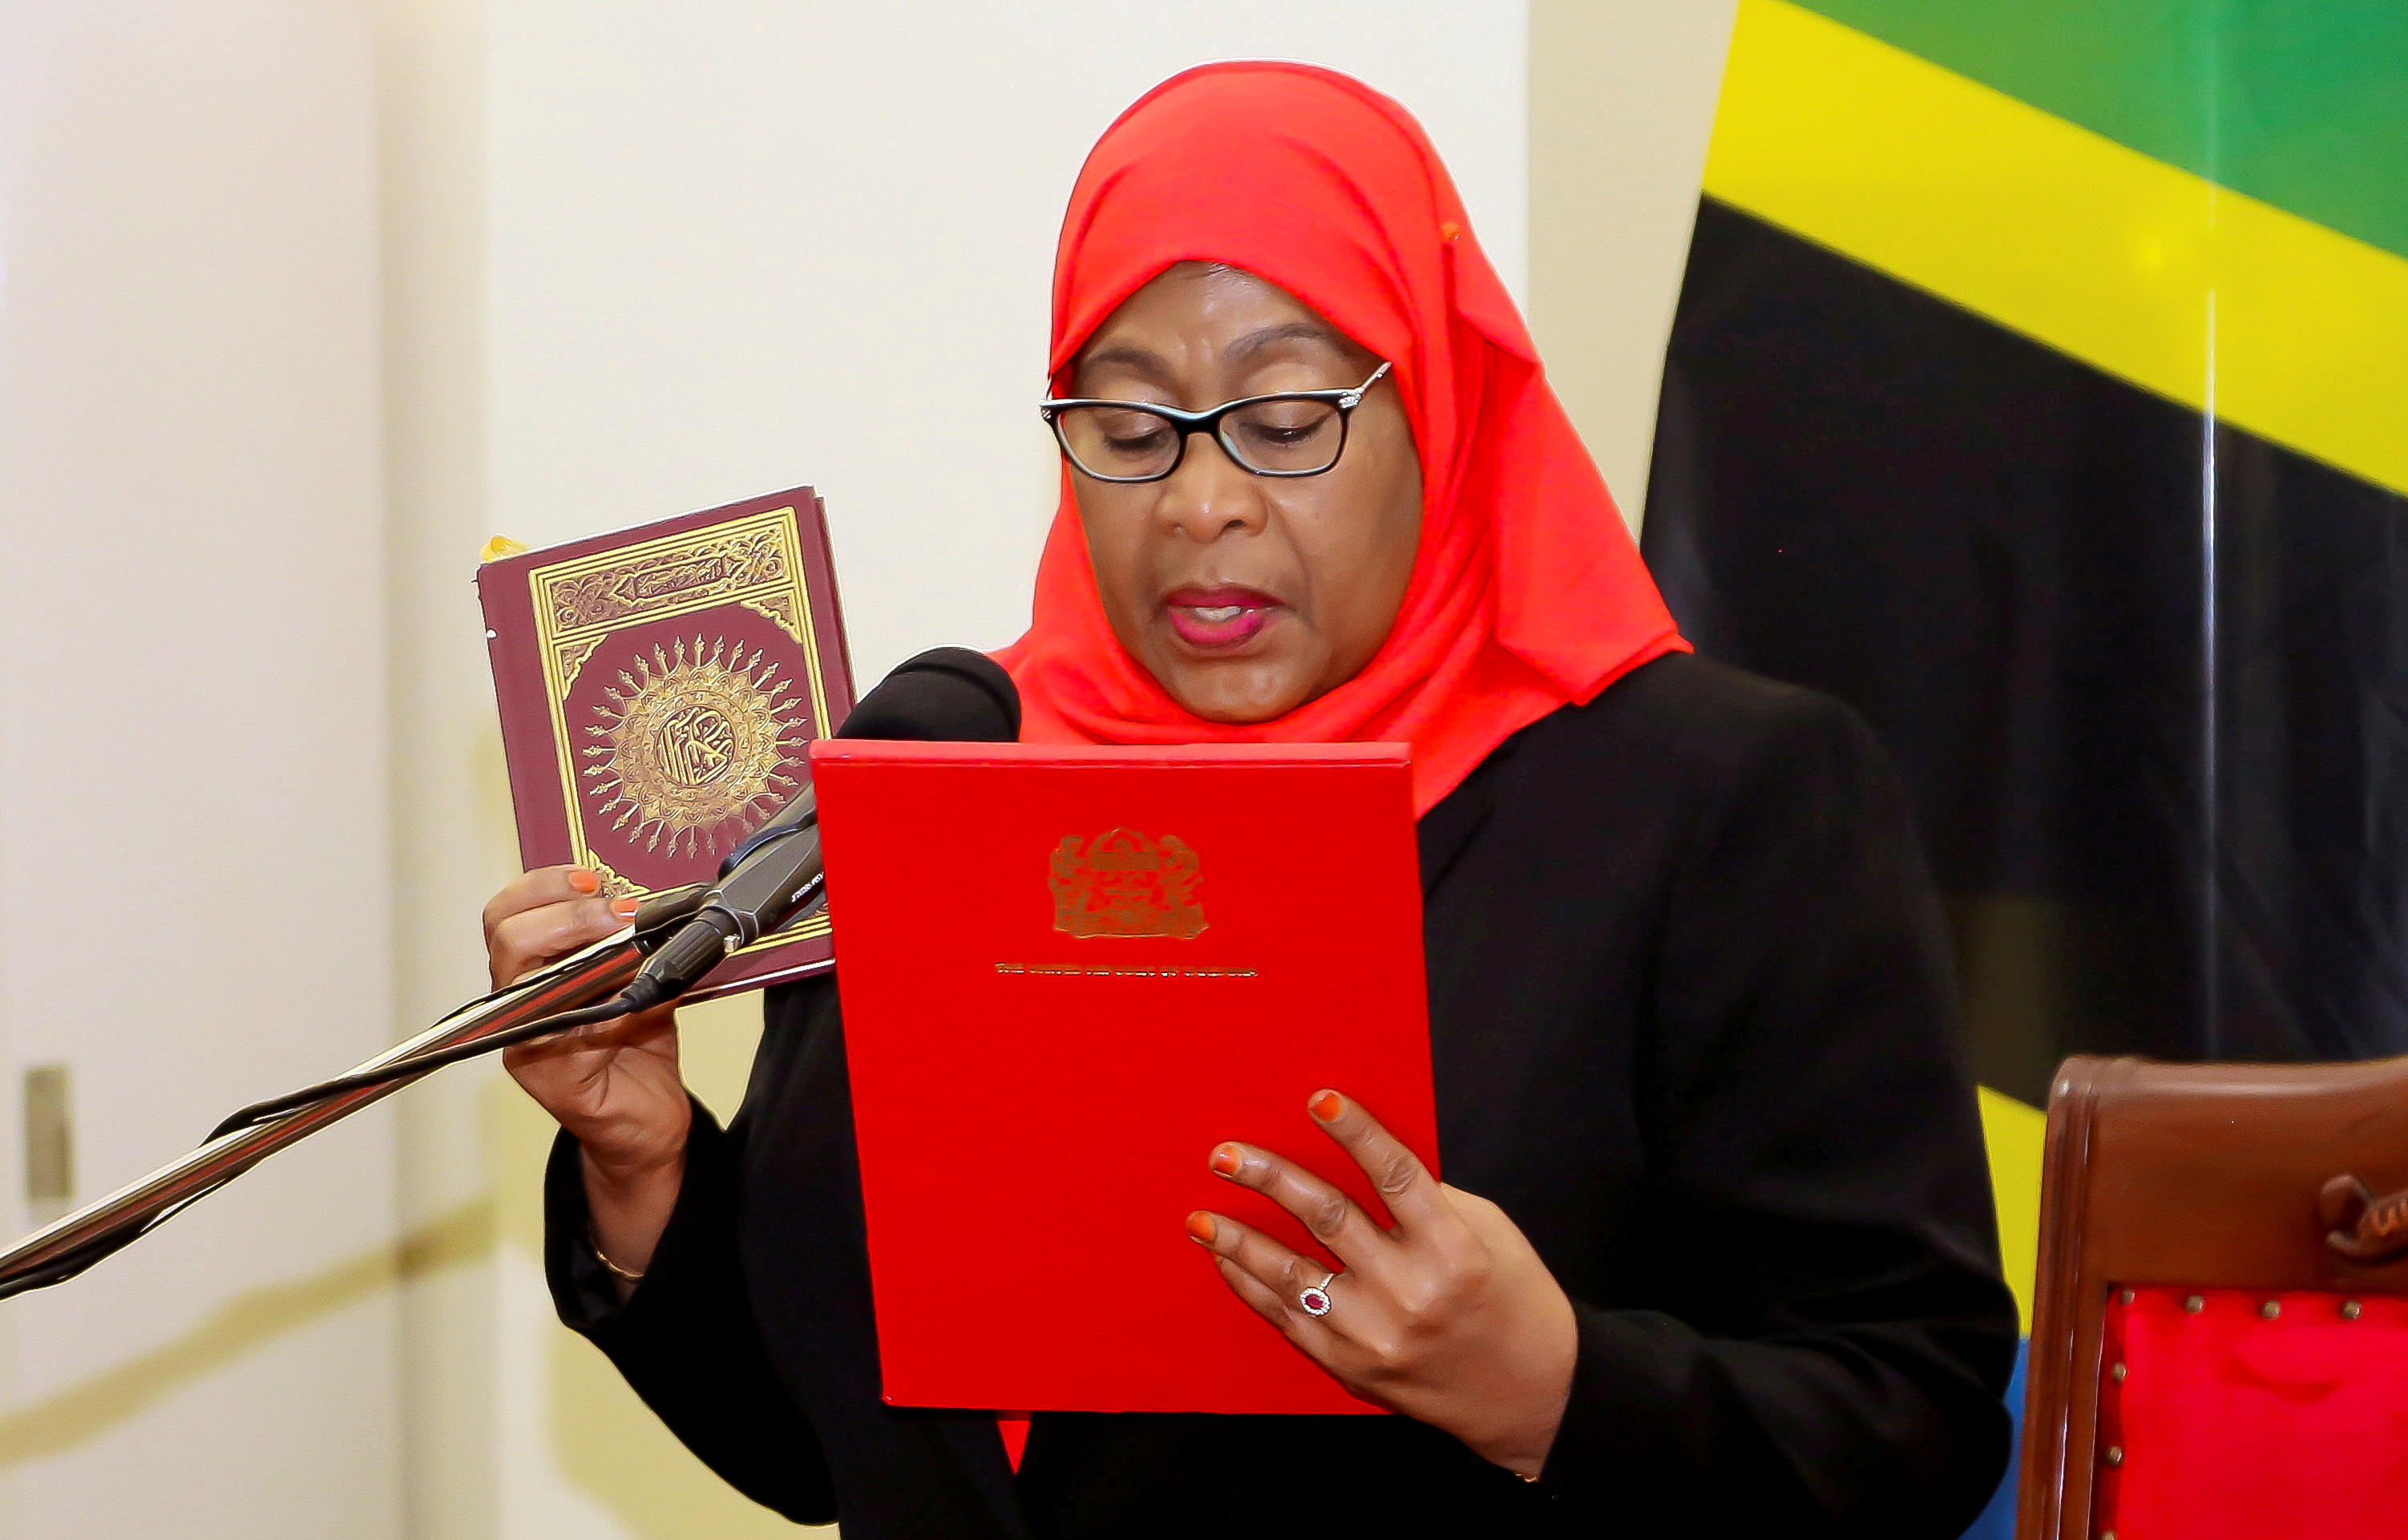 Tanzania's new President Samia Suluhu Hassan takes oath of office following the death of her predecessor John Pombe Magufuli at State House in Dar es Salaam, Tanzania March 19, 2021. REUTERS/Stringer